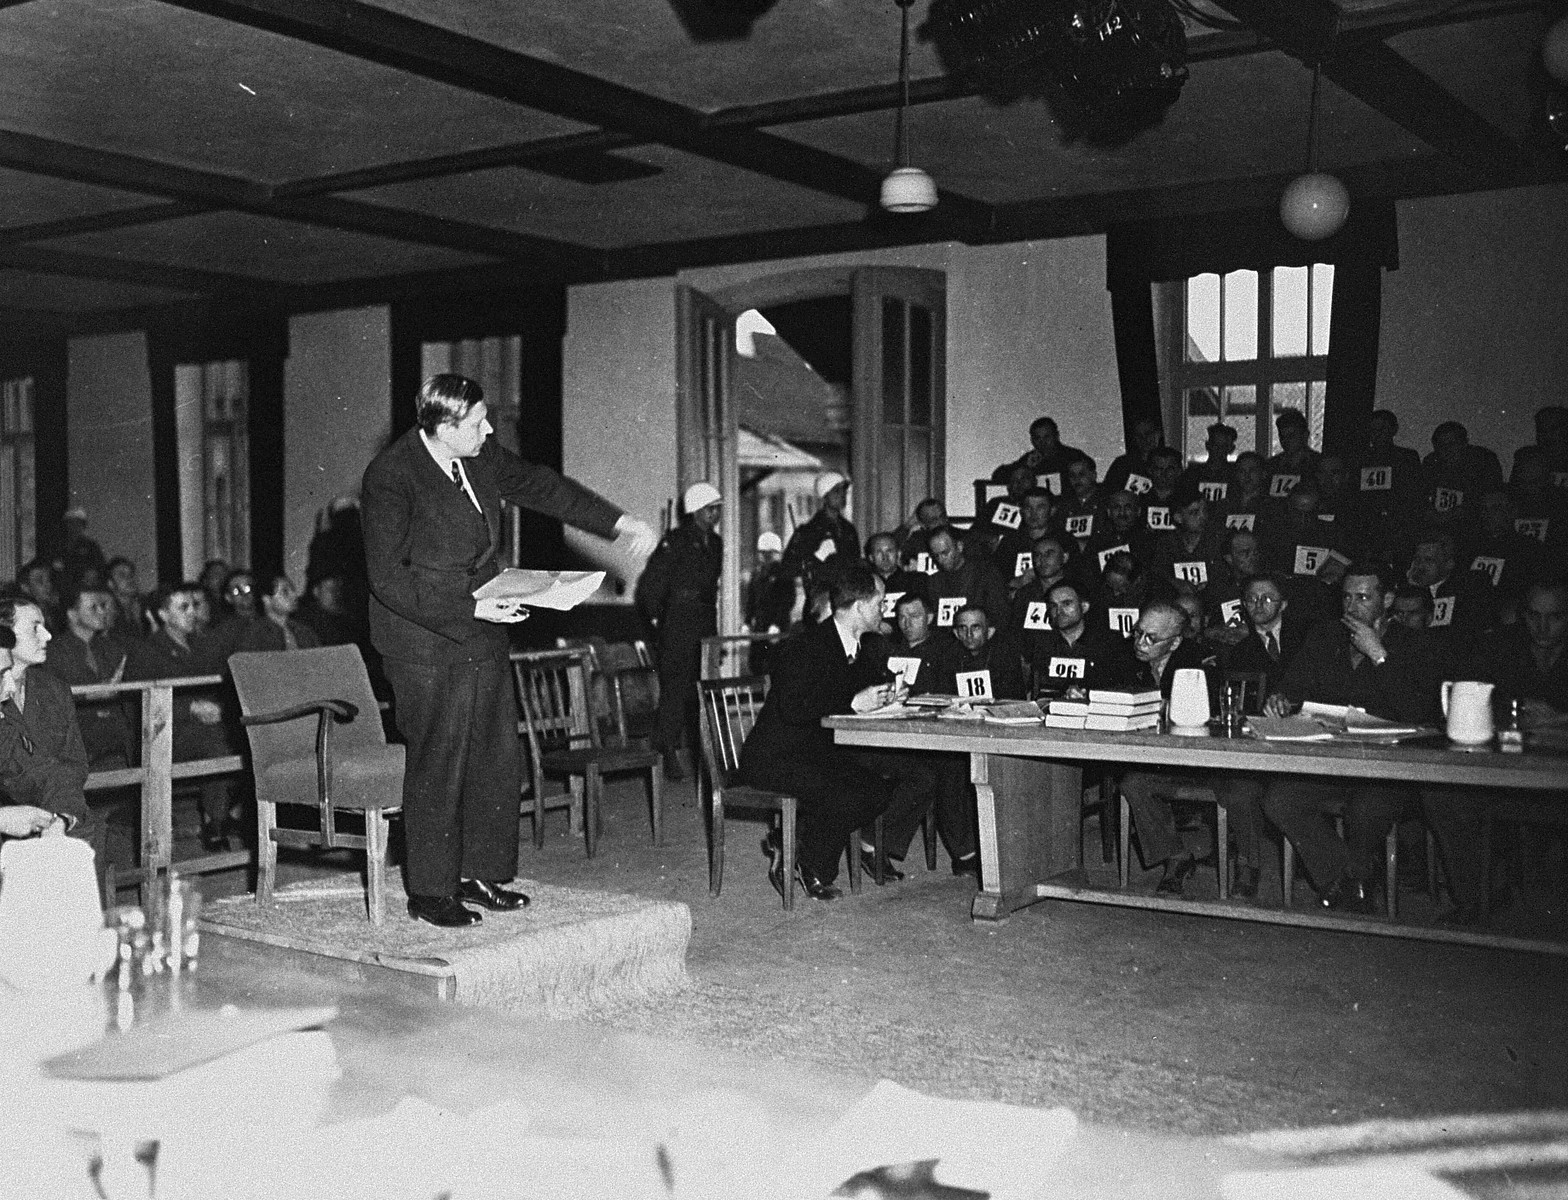 Prof. Dr. Vratislav Busek, a former prisoner at Mauthausen, testifies at the trial of 61 former camp personnel and prisoners from Mauthausen.